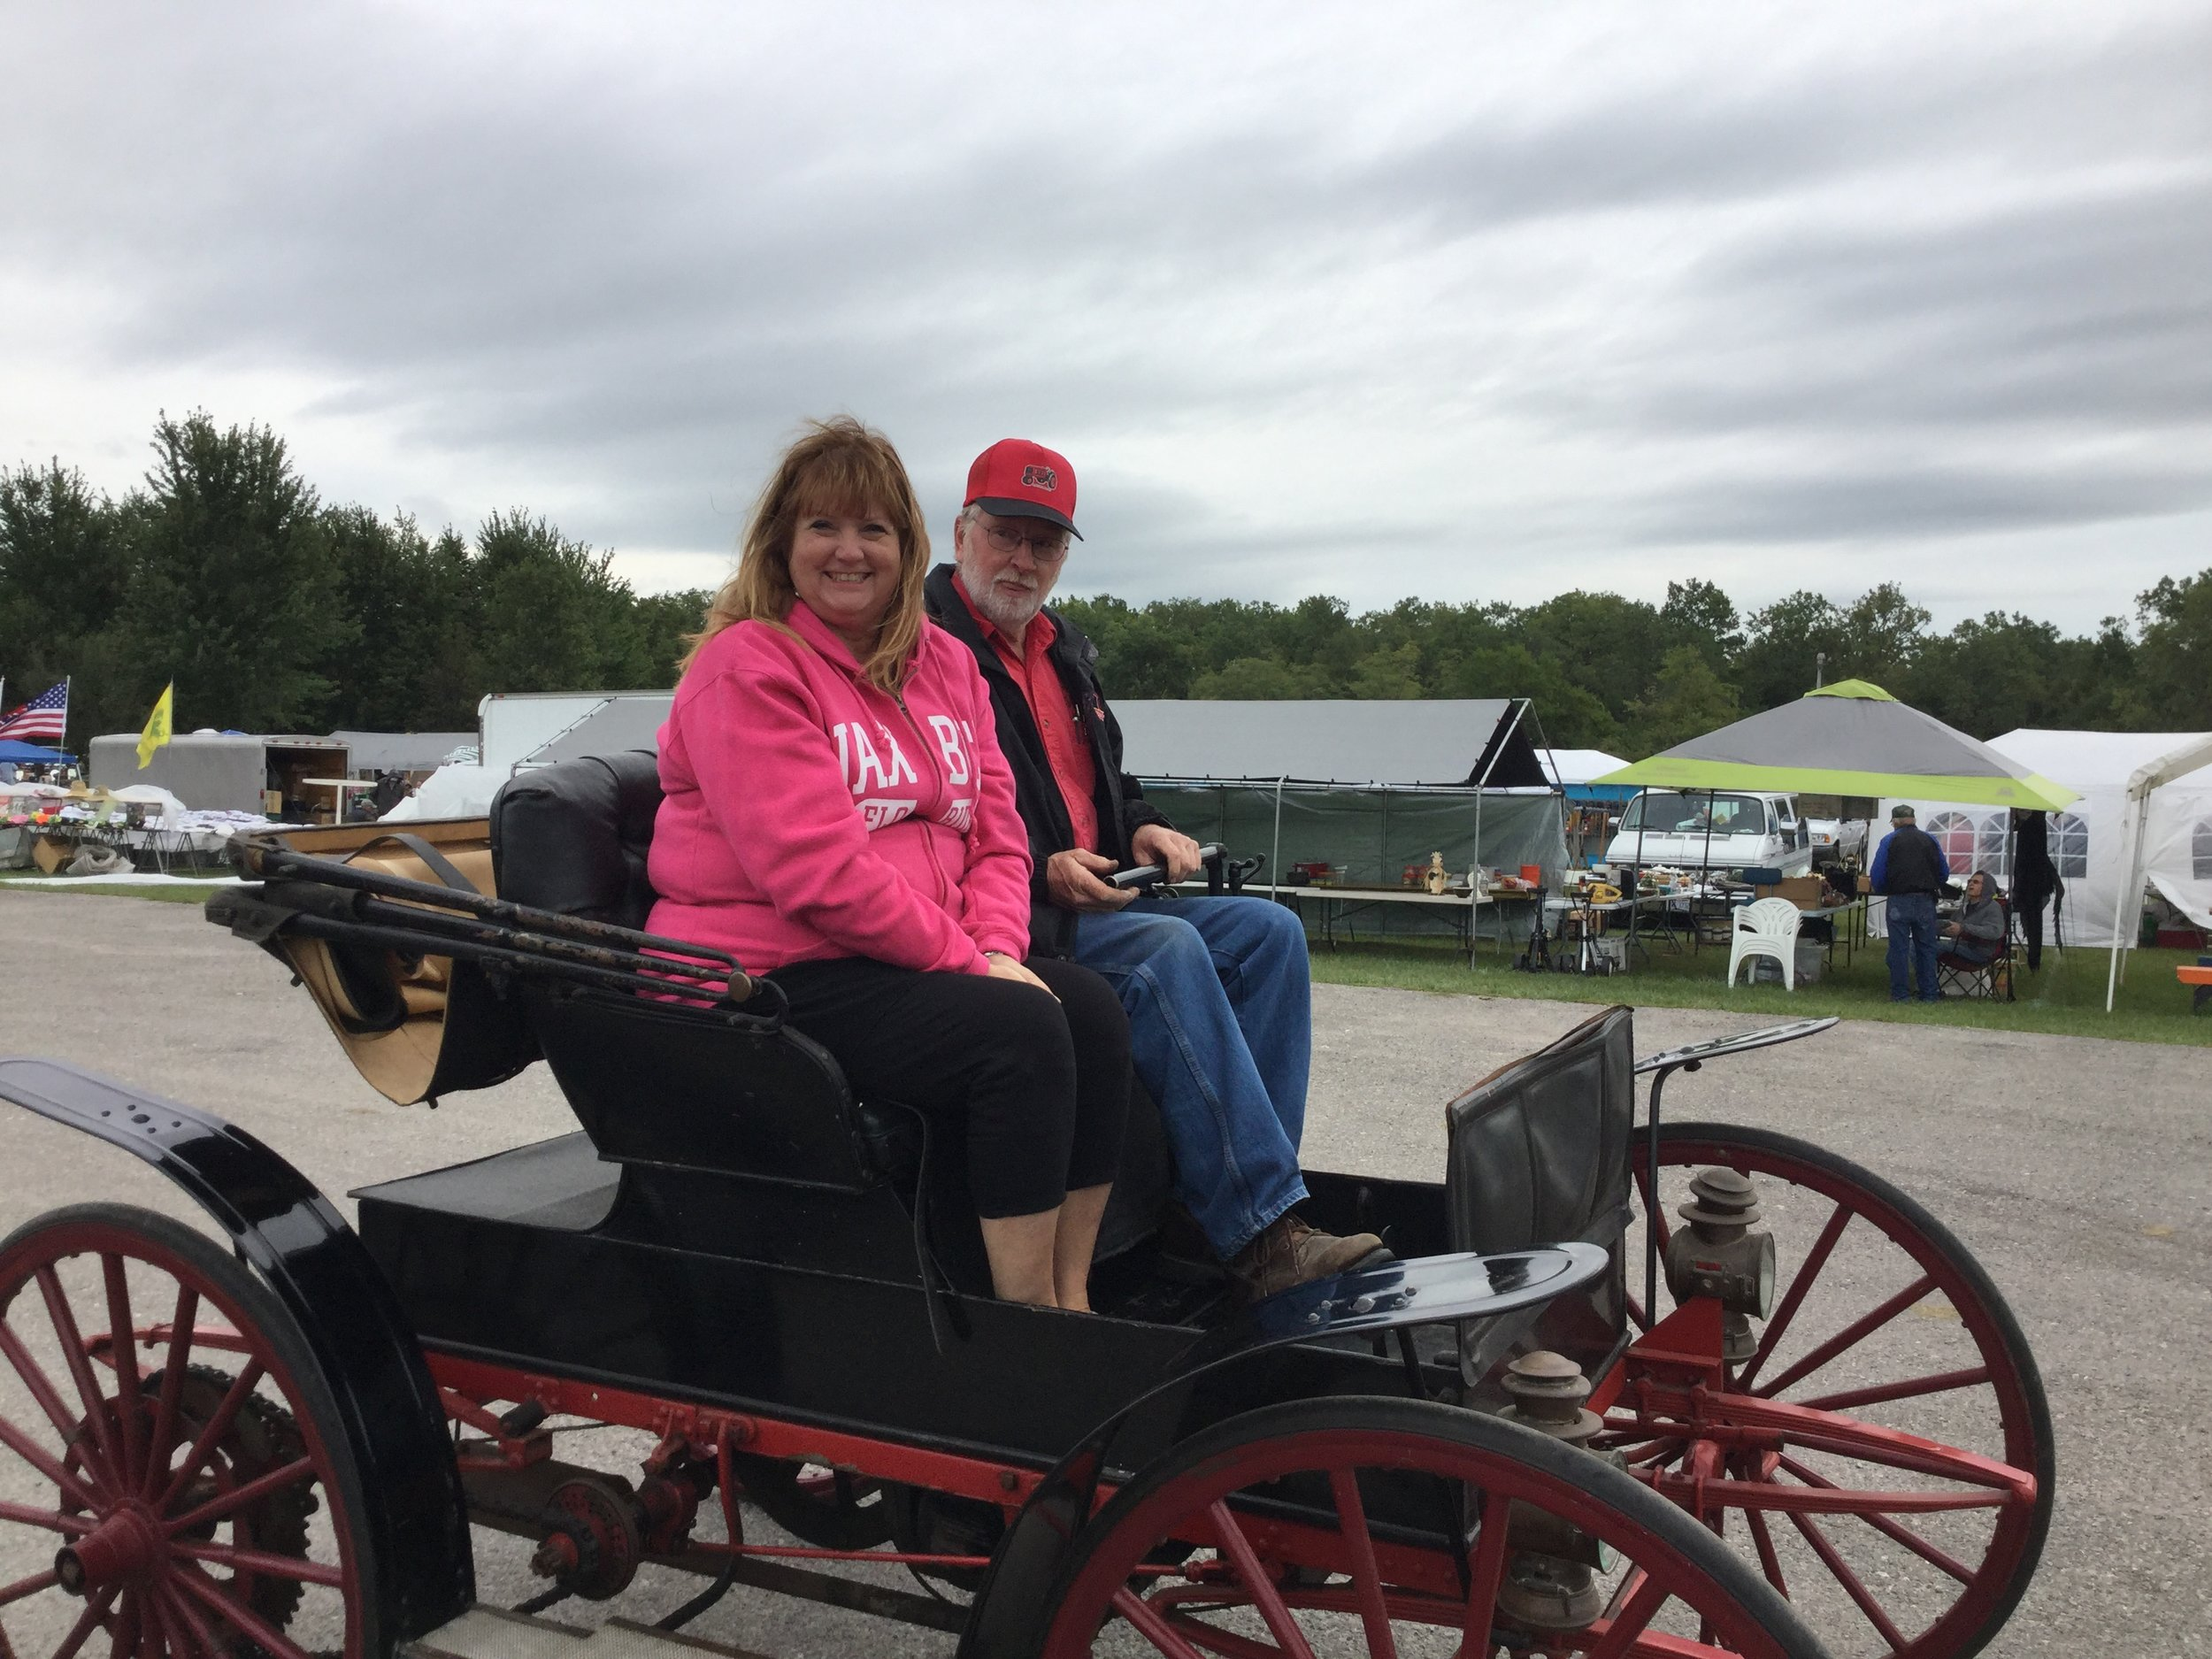 Kent Jansen gave me a ride in his awesome 1909 Sears Motor Buggy at the Sandusky County Restorers of Antique Power (SCRAP) show.